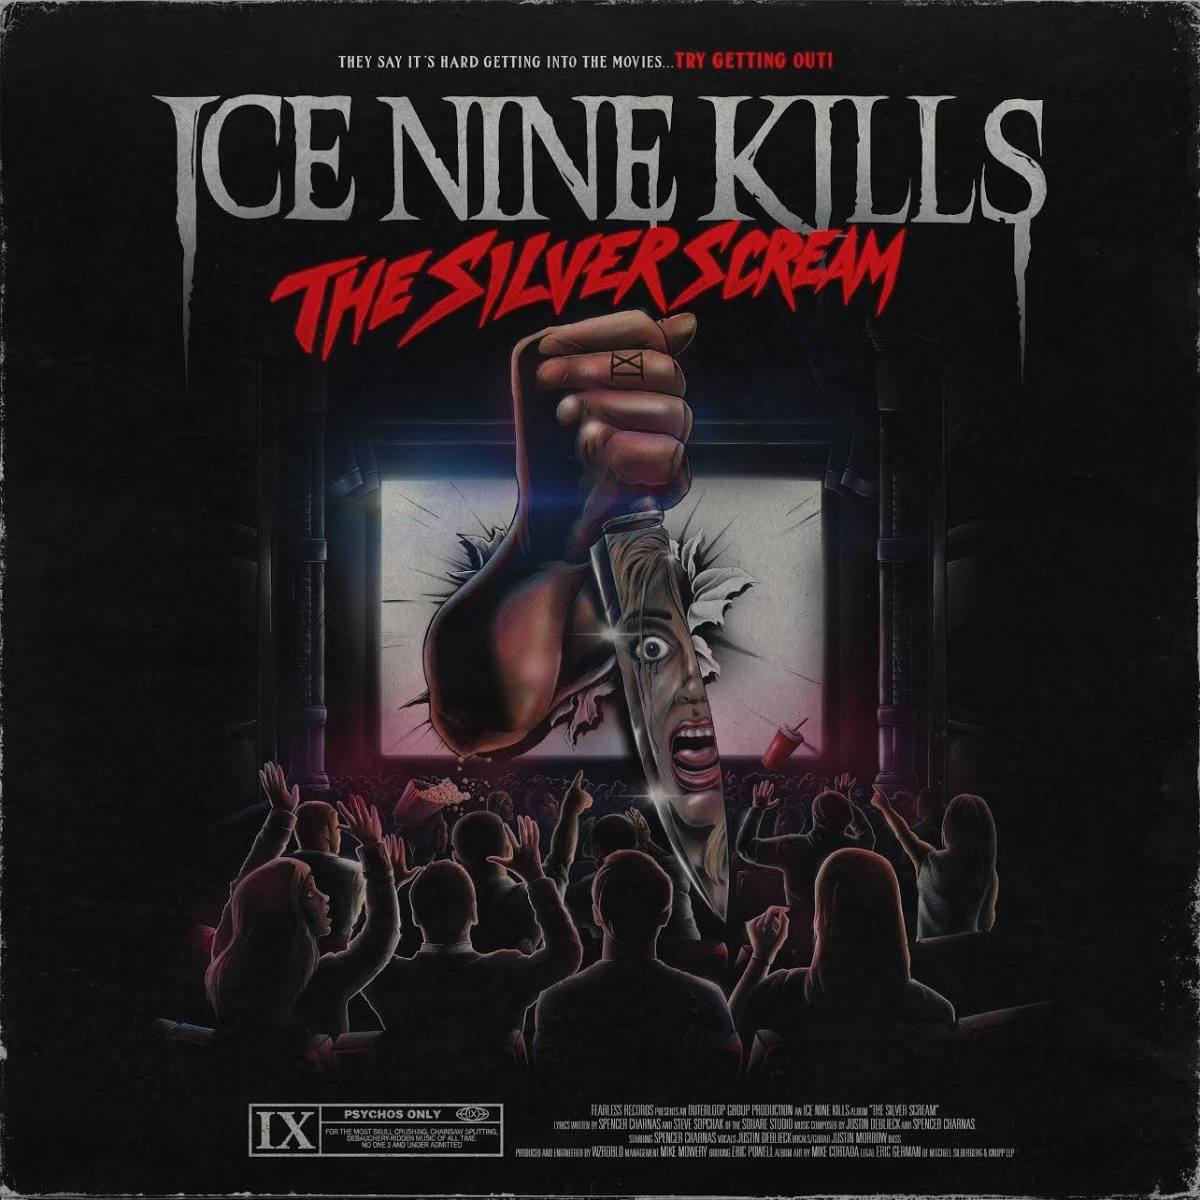 Ice Nine Kills - The Silver Scream (Album Review)